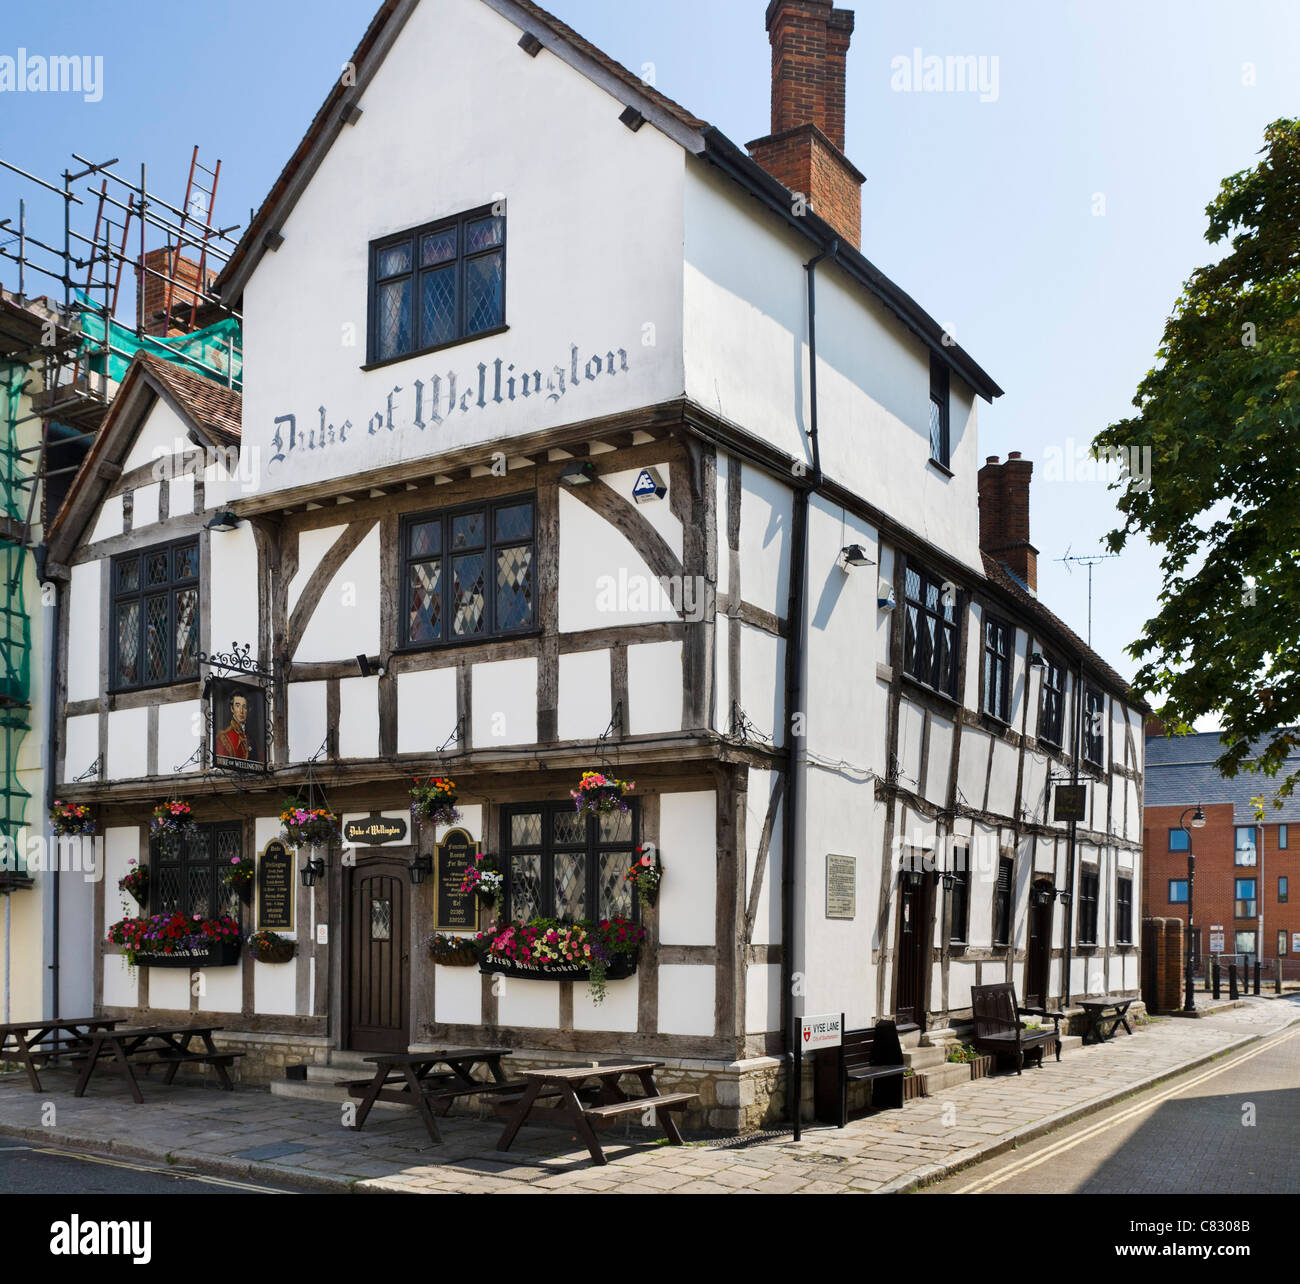 The historic Duke of Wellington pub on Bugle Street in the old town, Southampton, Hampshire, England, UK - Stock Image